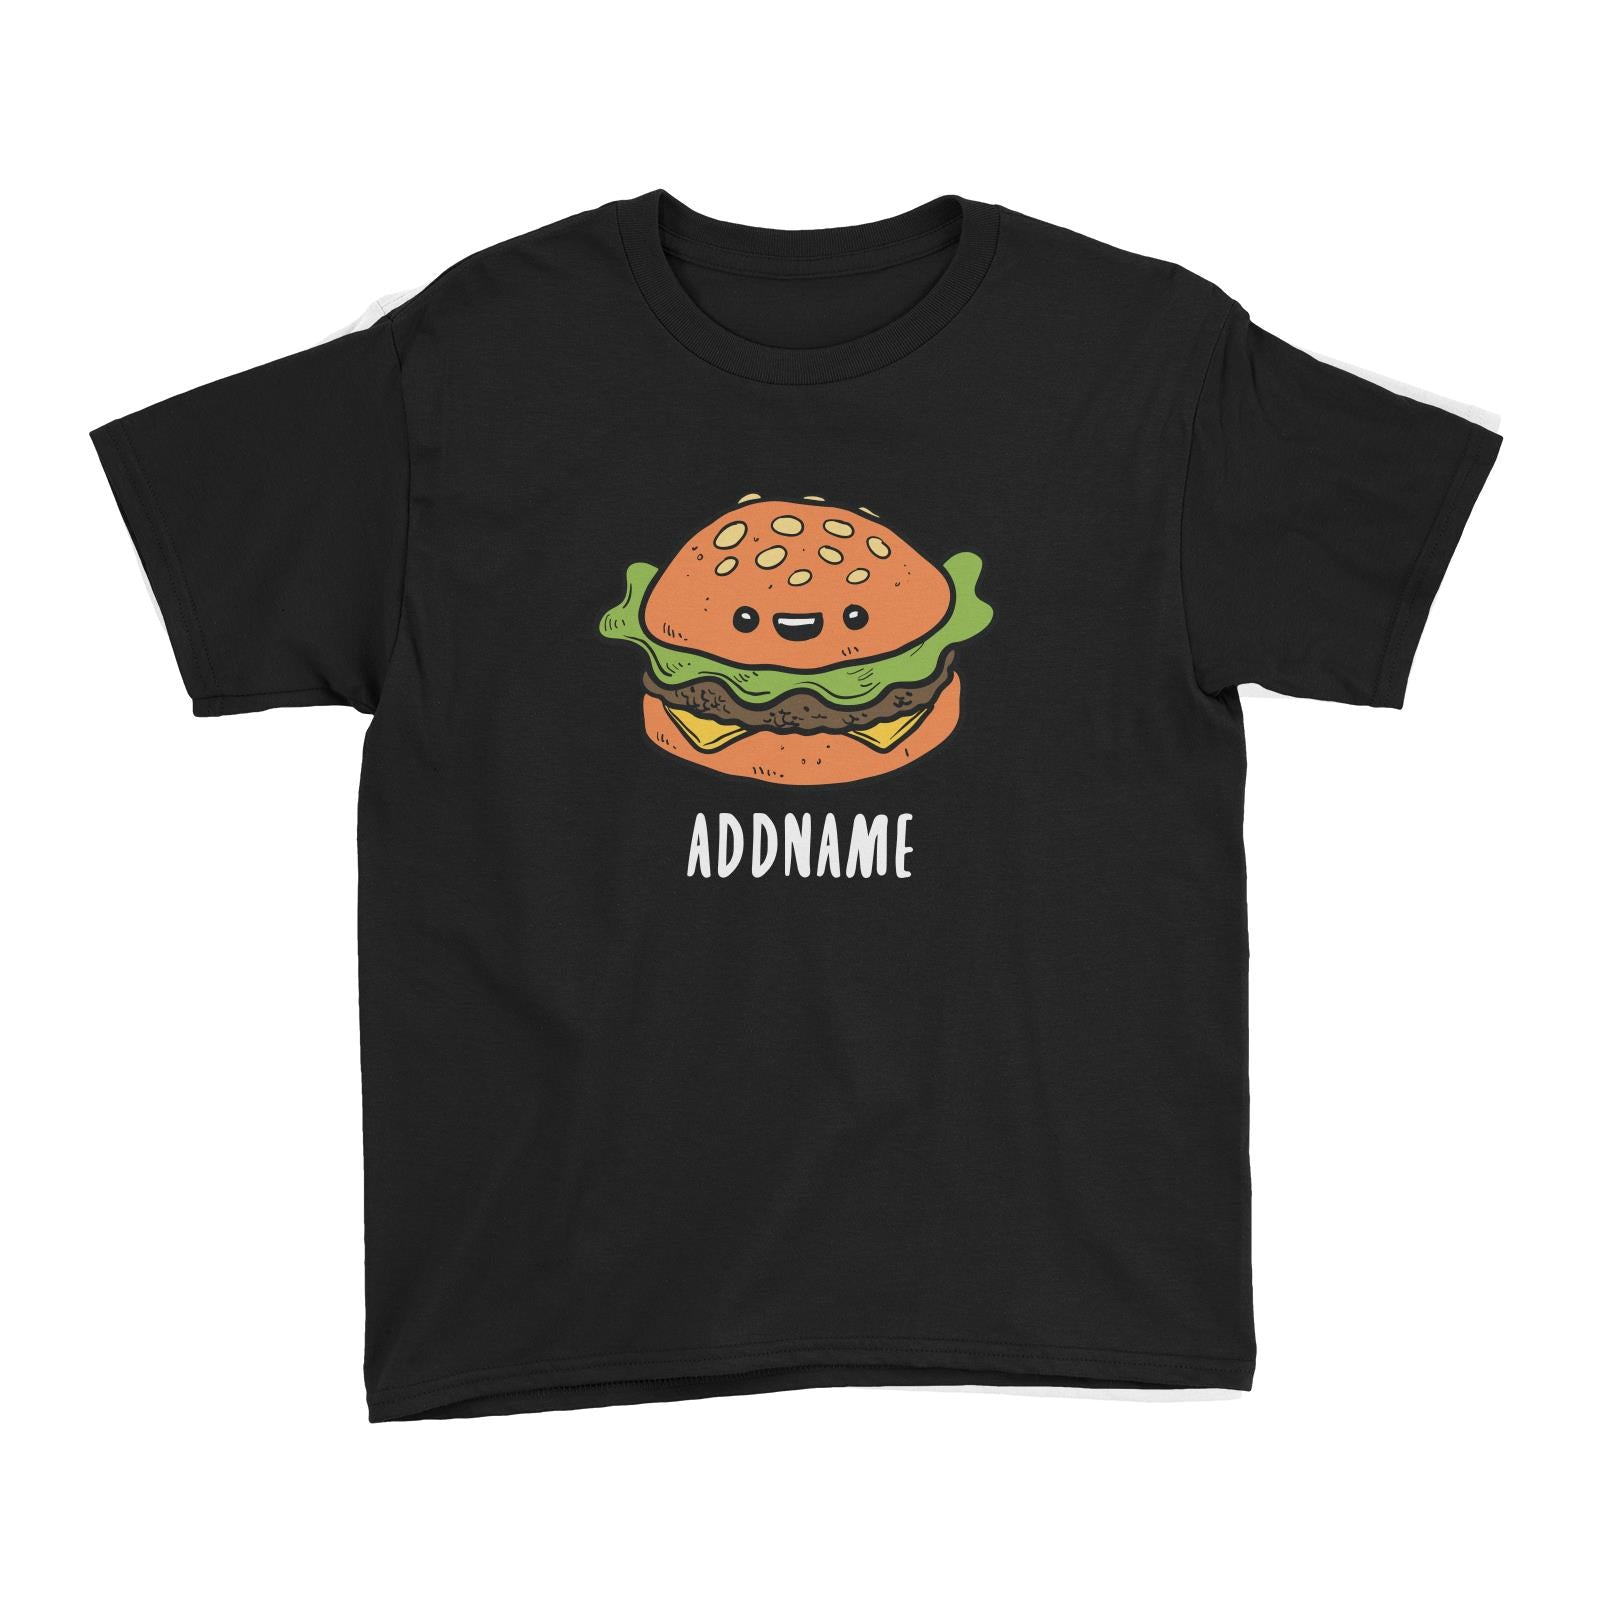 Fast Food Burger Addname Kid's T-Shirt  Matching Family Comic Cartoon Personalizable Designs